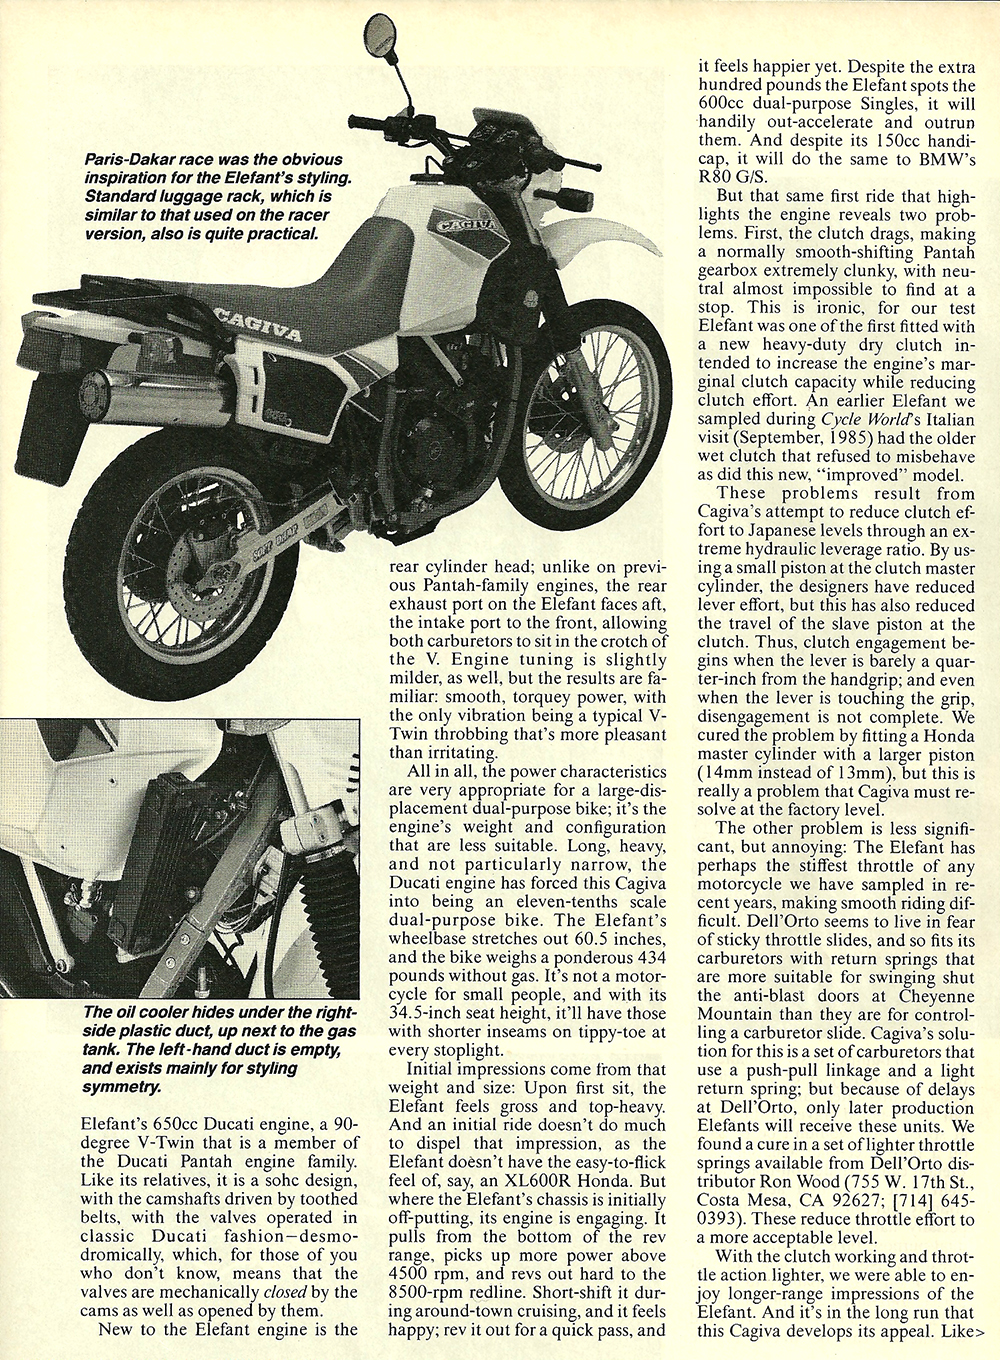 1985 Cagiva 650 Elefant road test 03.jpg